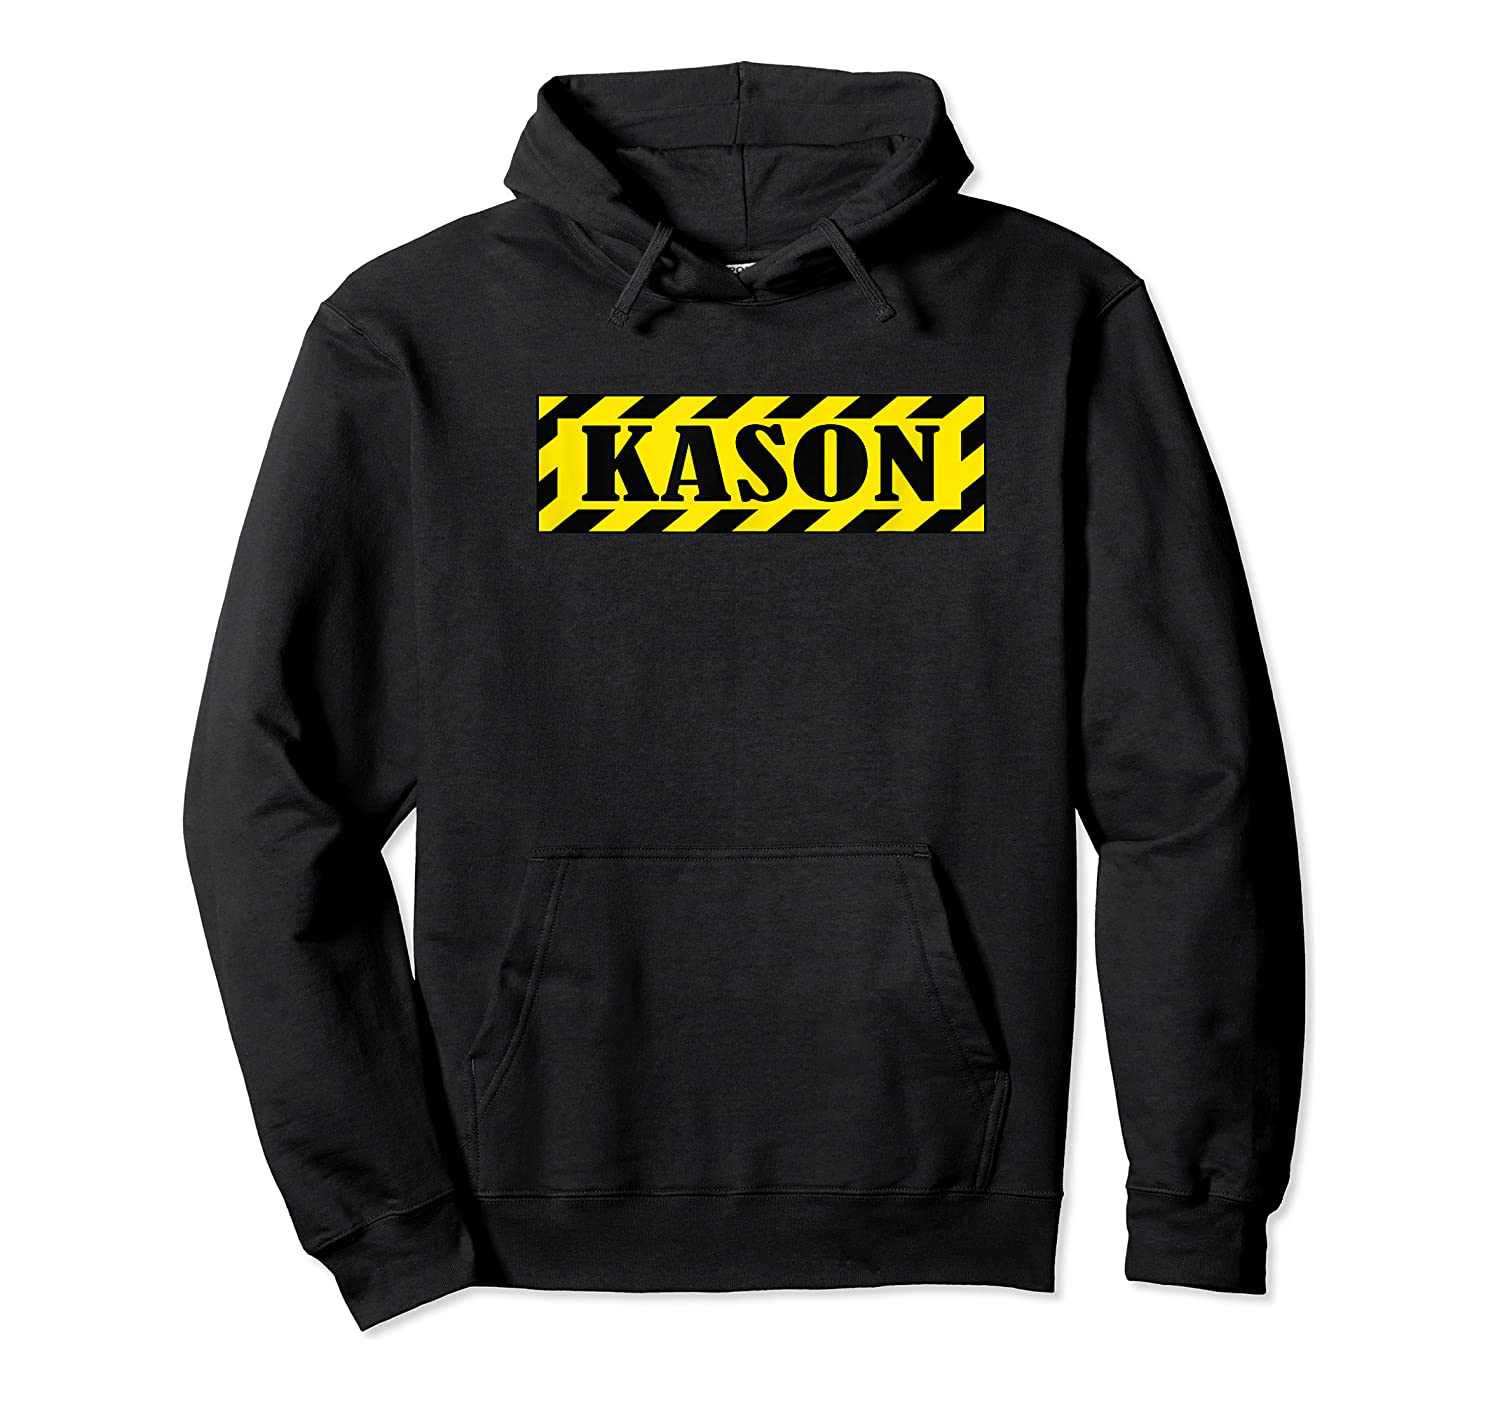 Best Gift For Named Kasonboy Name Shirts Unisex Pullover Hoodie